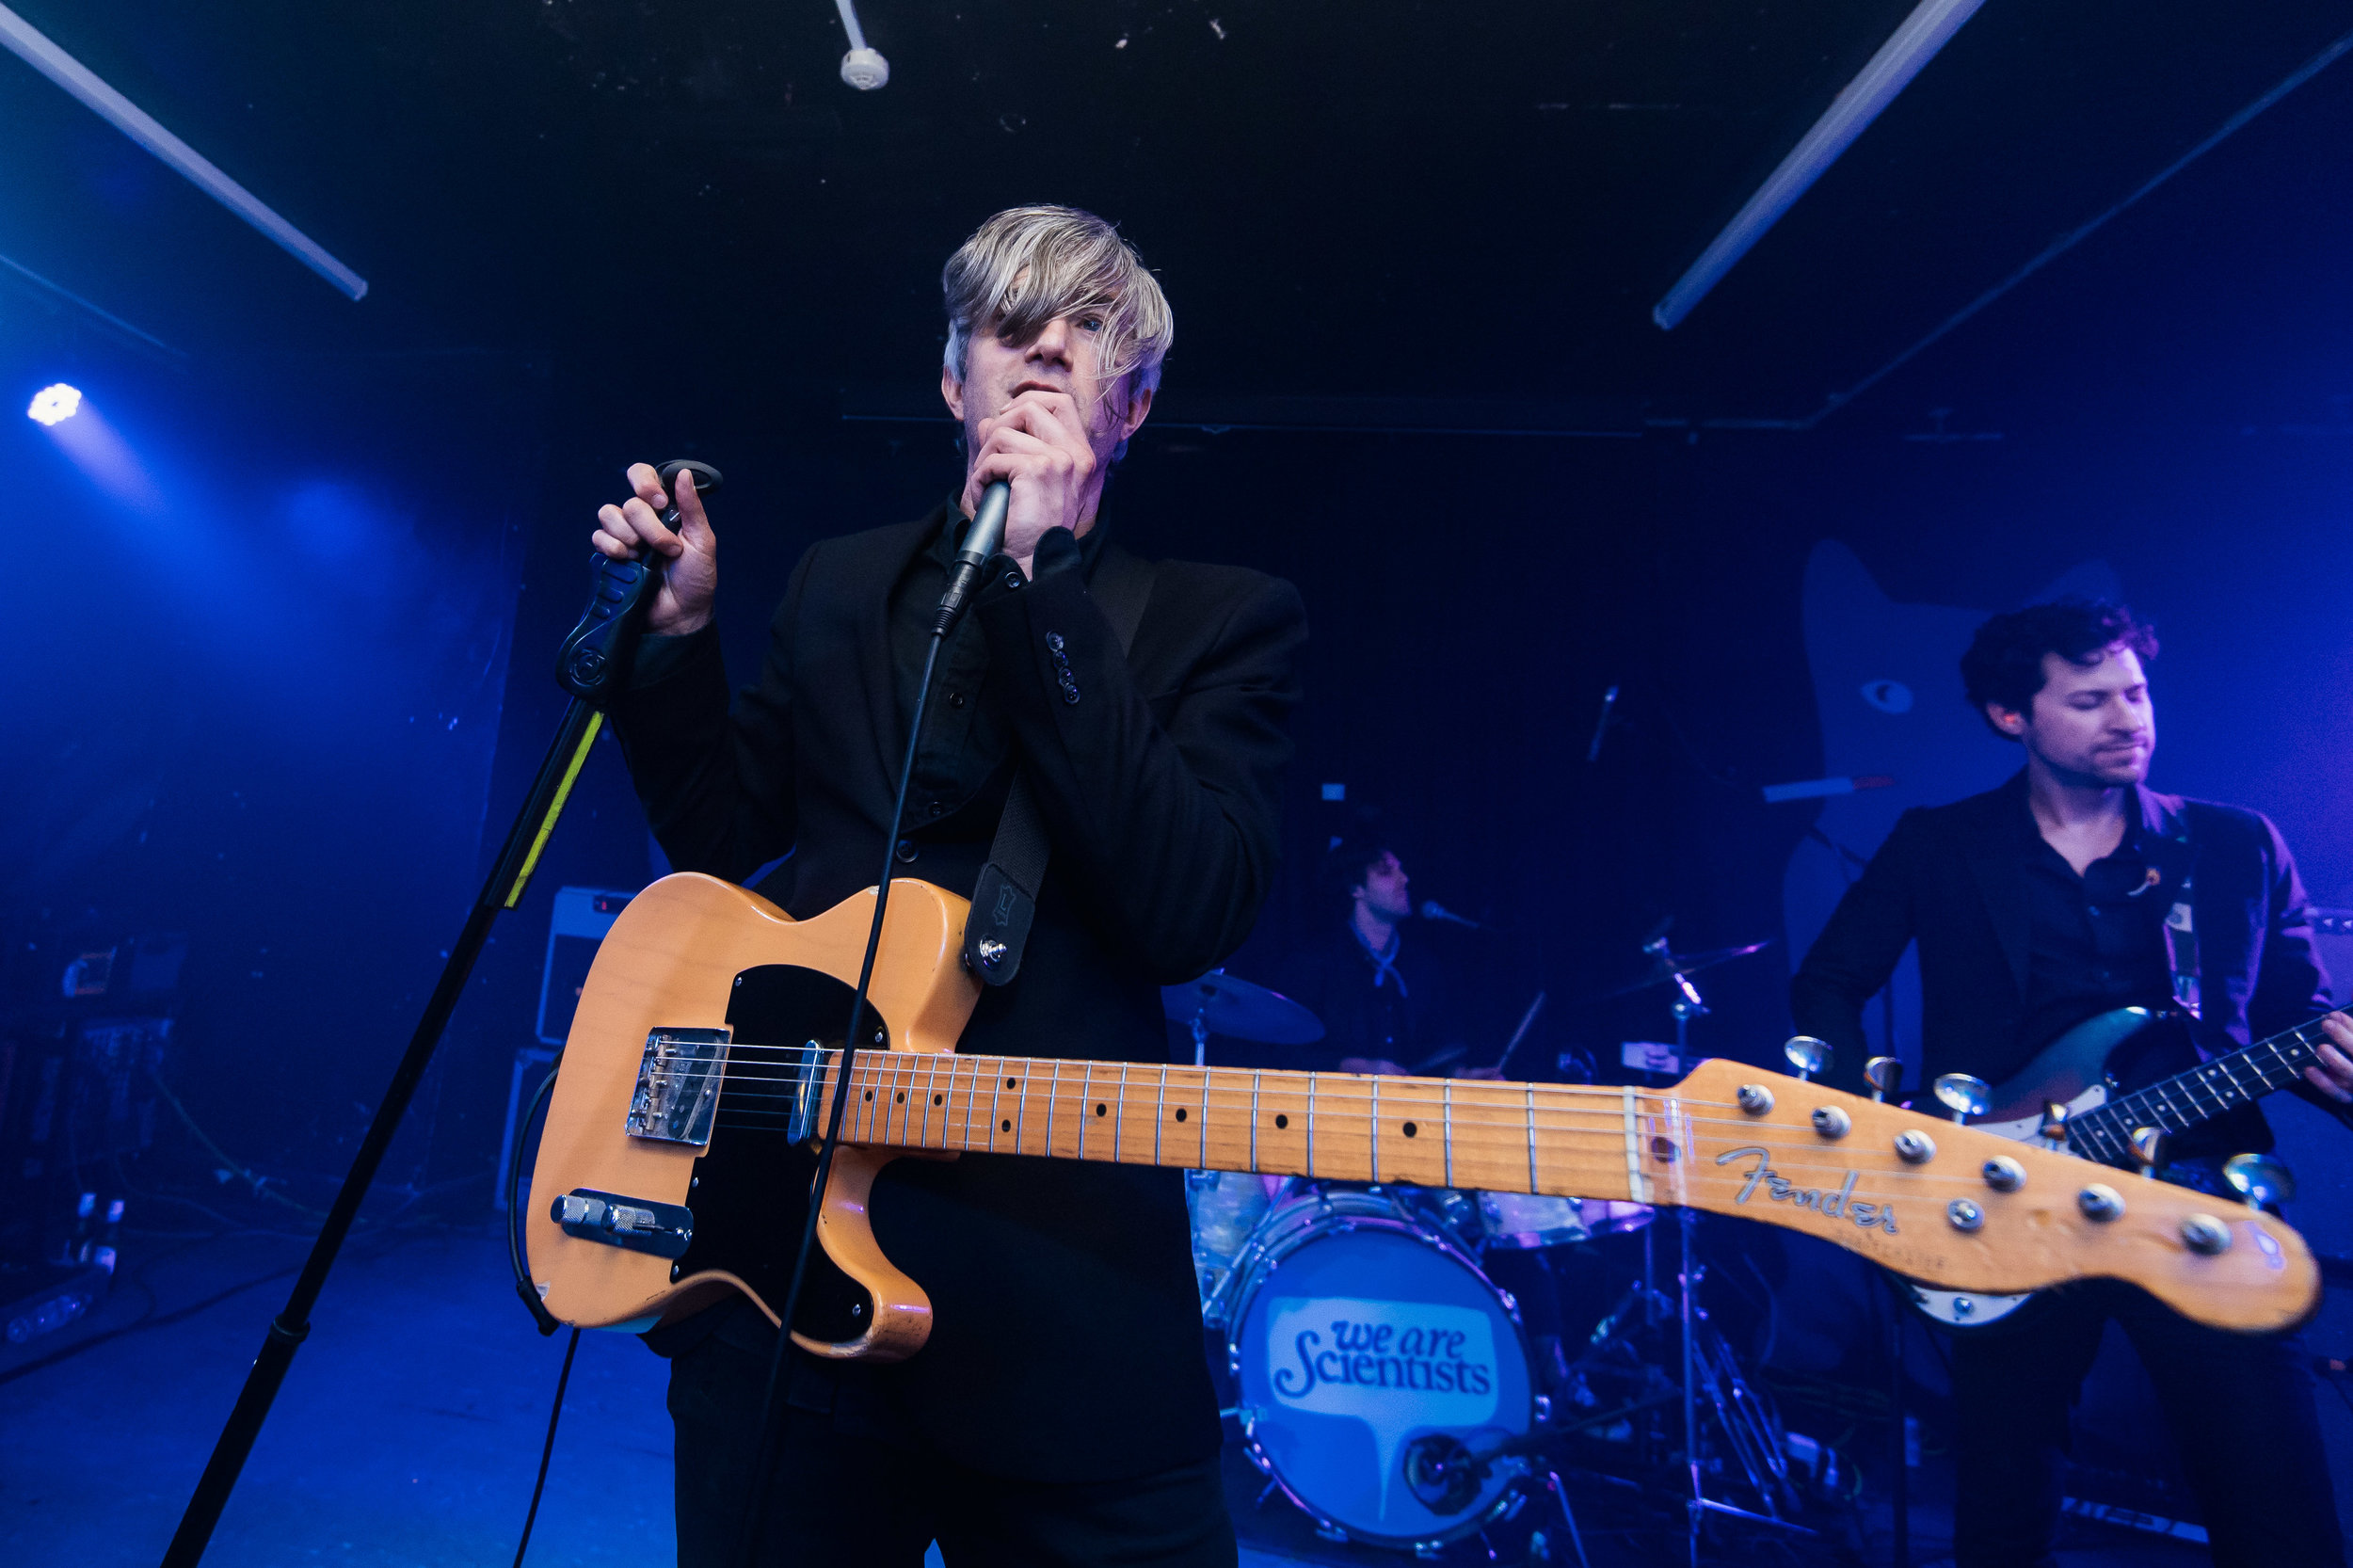 20161008_PollyThomas_WeAreScientists_19.jpg